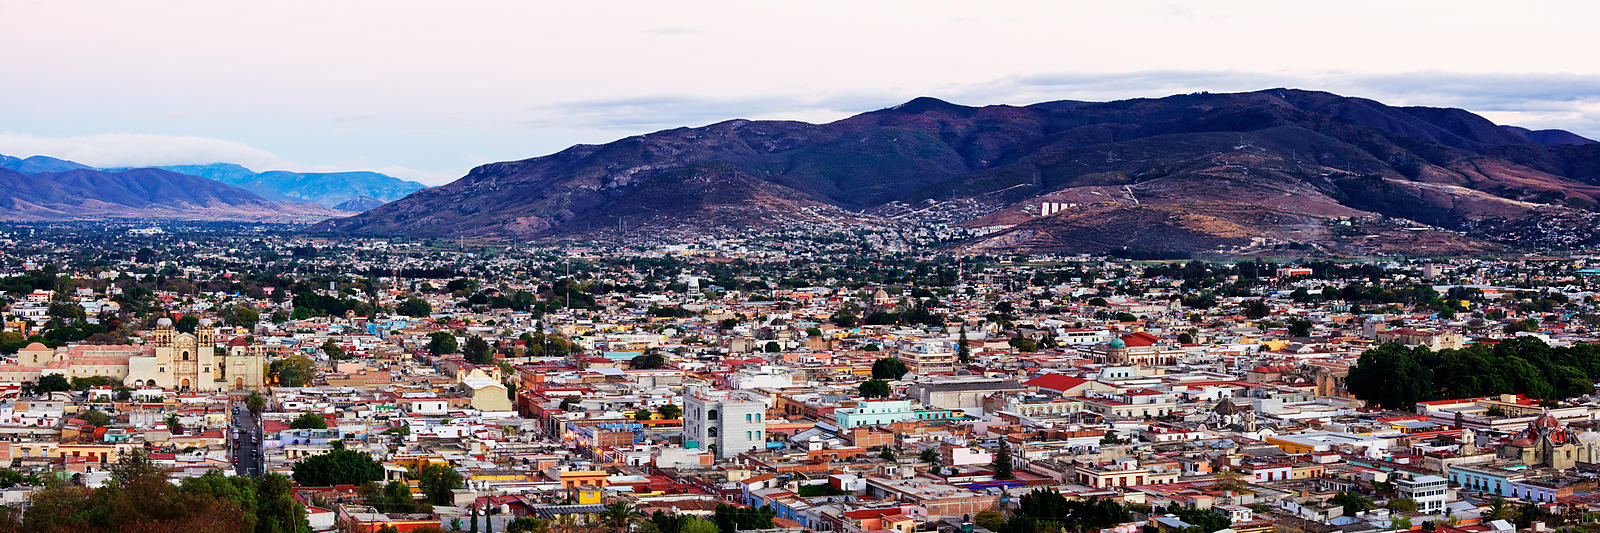 Panoramic Cityscape of Oaxaca